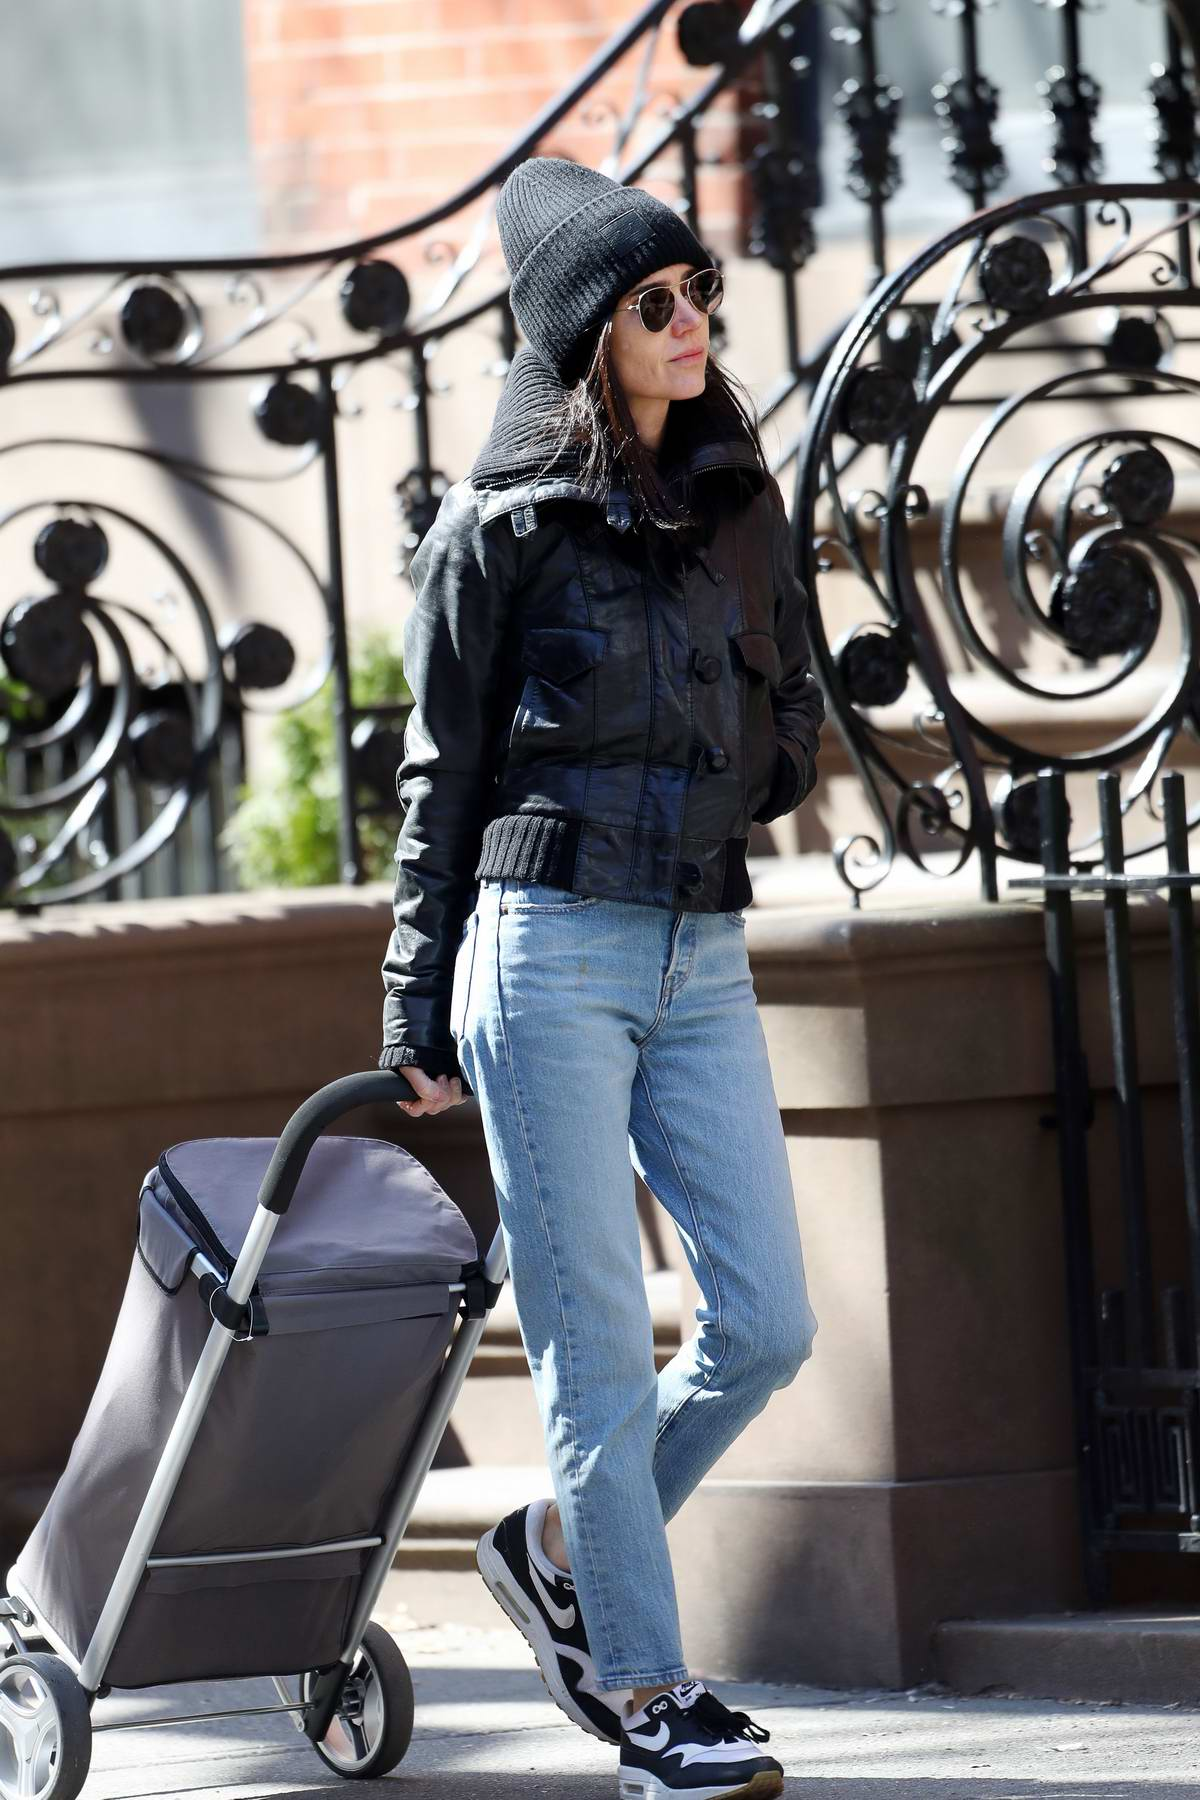 Jennifer Connelly bundles up in a black beanie, matching jacket, jeans, and Nike trainer while out in New York City